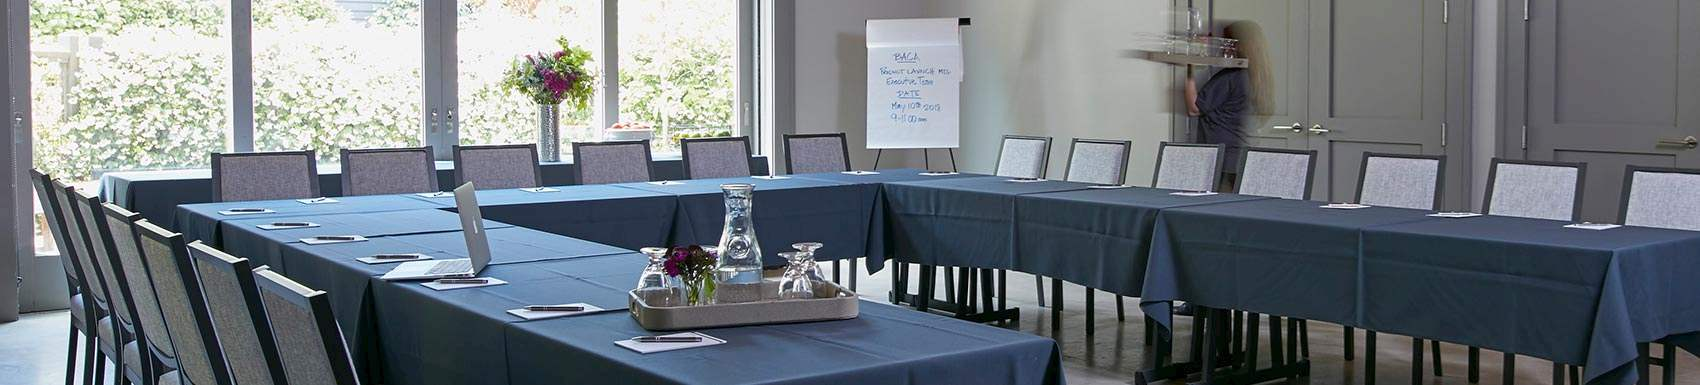 SENZA Hotel, Napa offers Meeting Packages